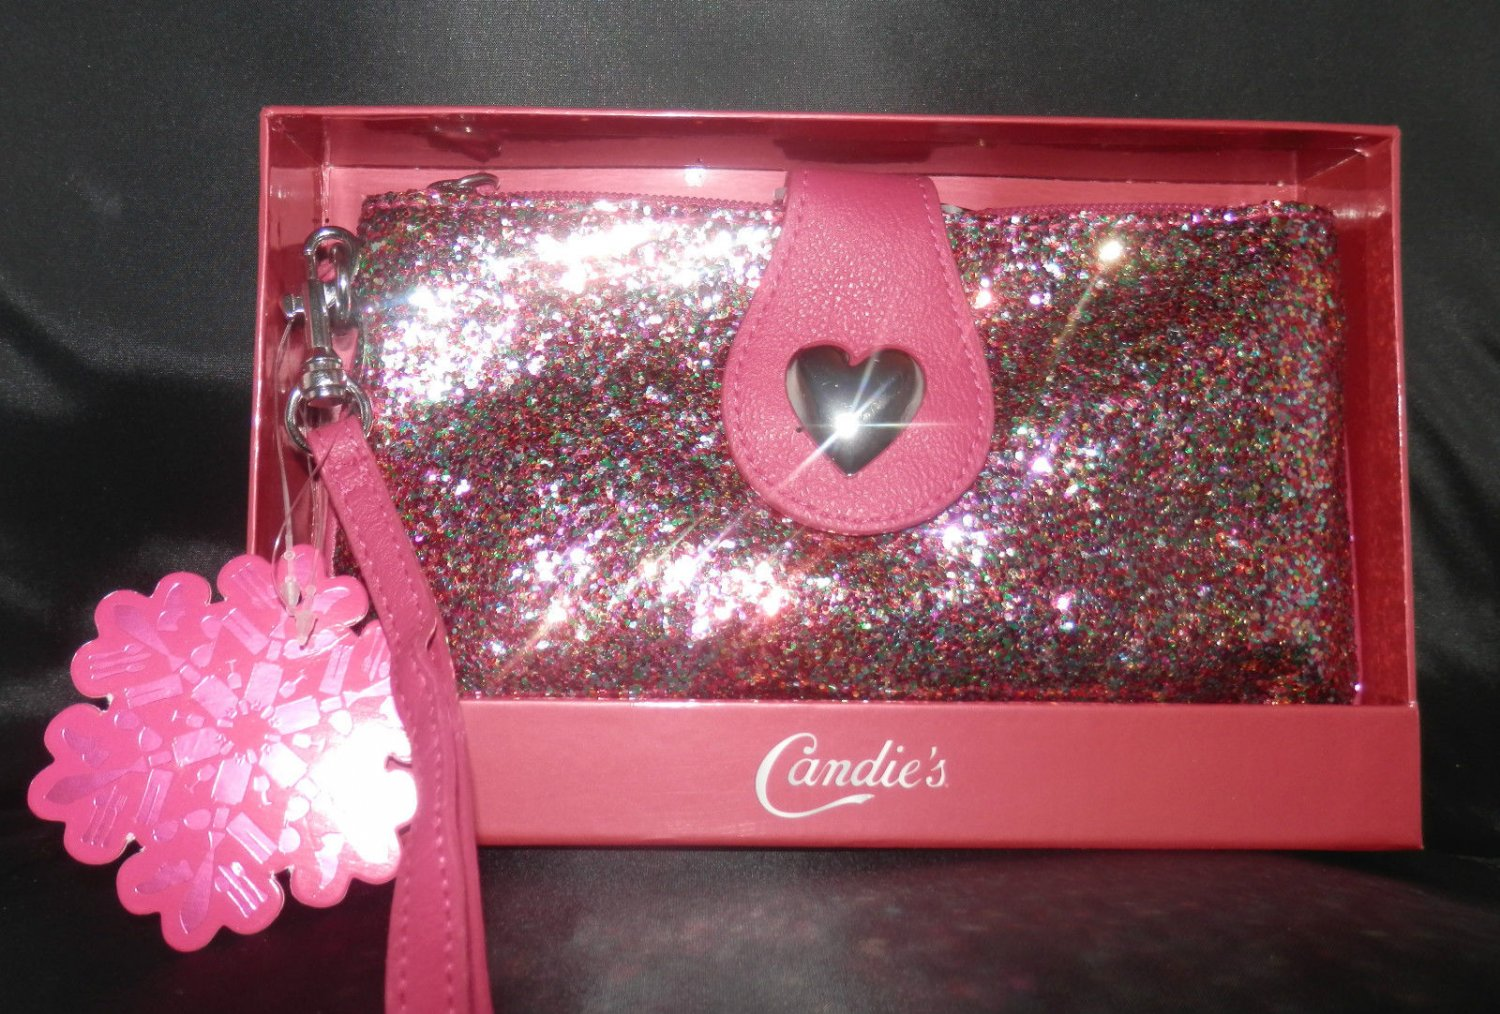 Candie's Pink Wristlet